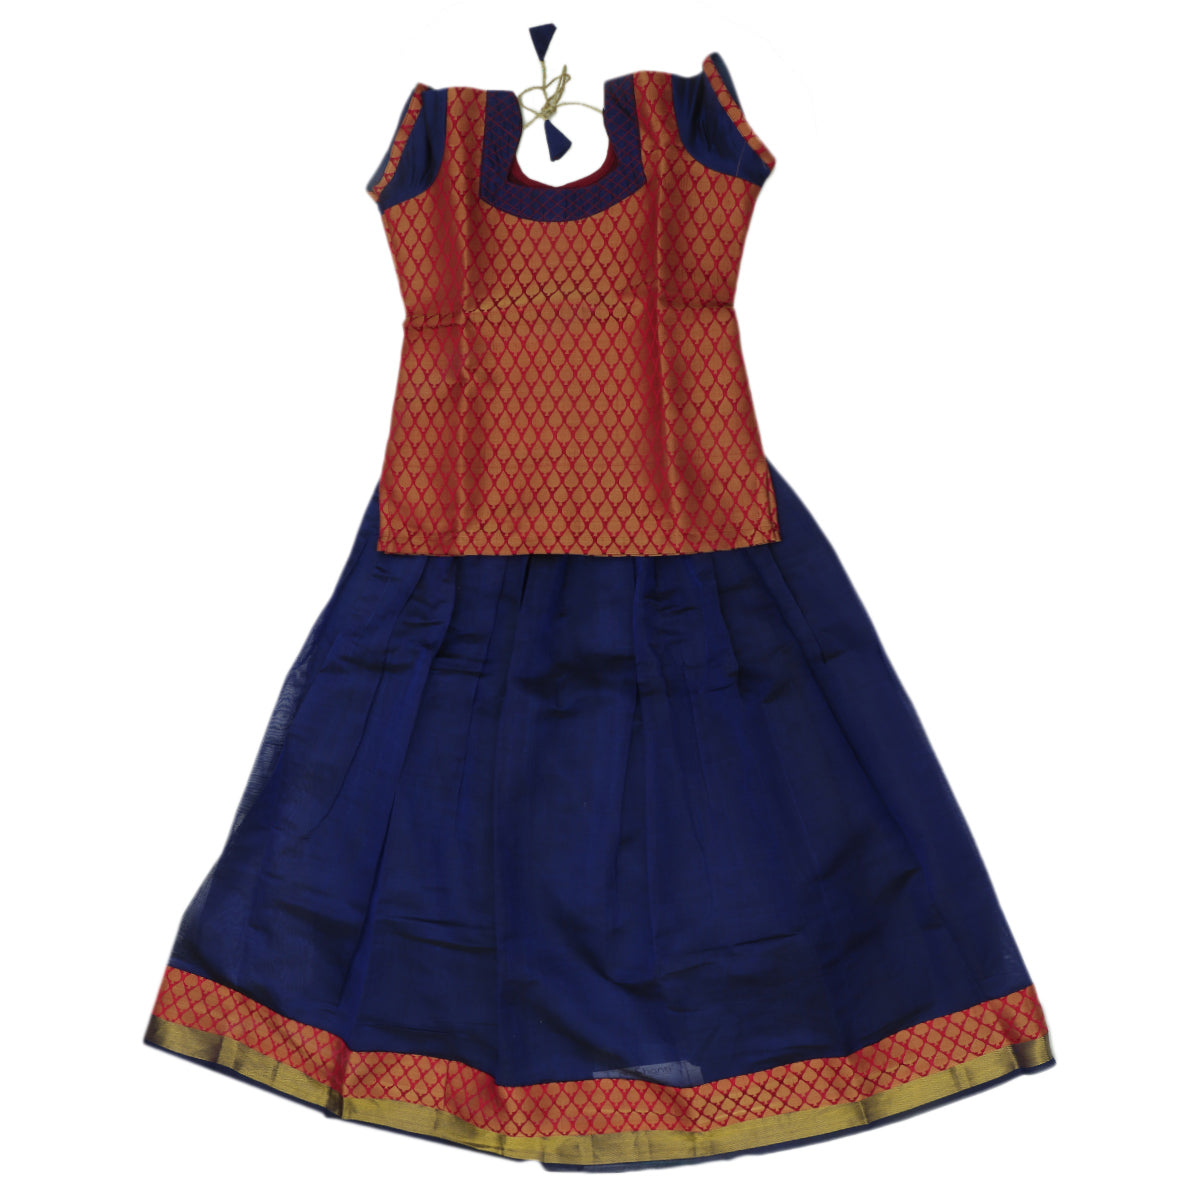 Paavadai Sattai - Red brocade blouse and Navy Blue with Simple Zari border ( 10 years)